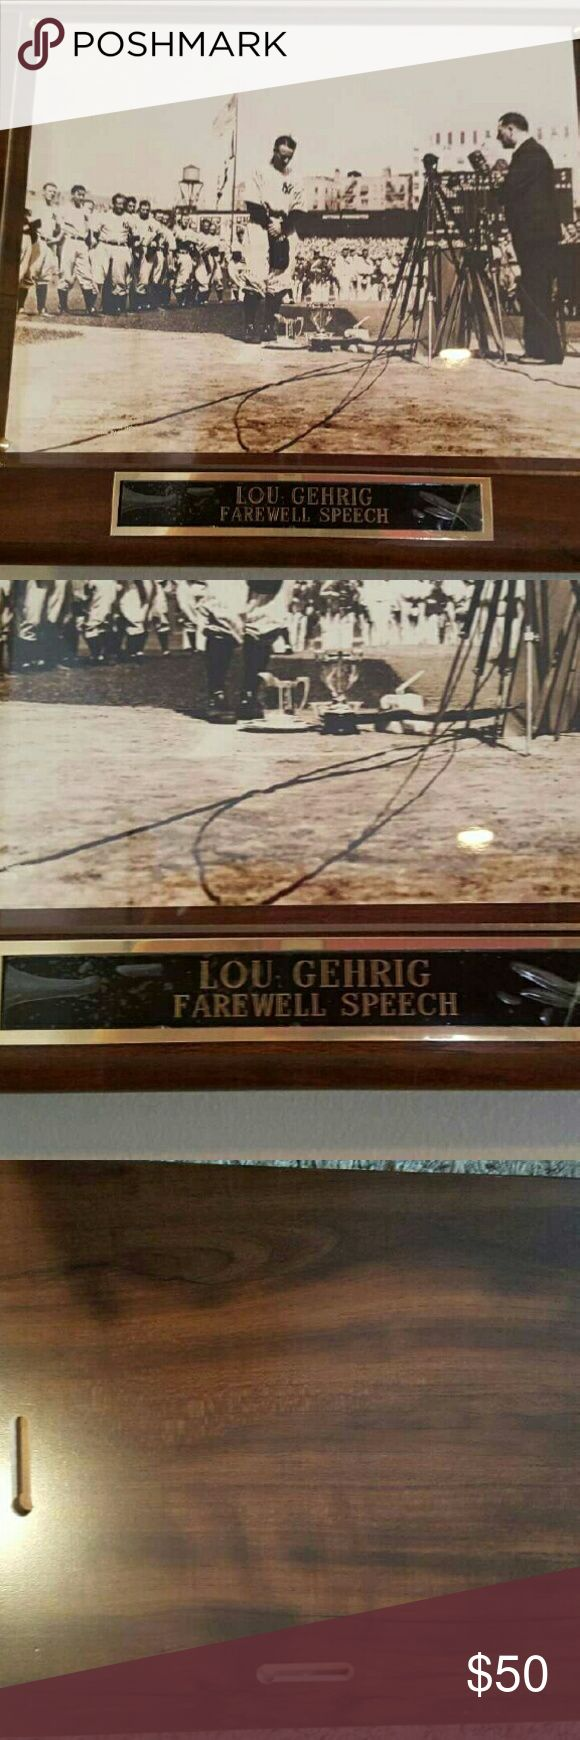 lou gehrig s farewell speech When they finished their act, a soldier shouted, hey, coop, how about lou gehrig's farewell speech to the yankees the soldiers had recently seen pride.